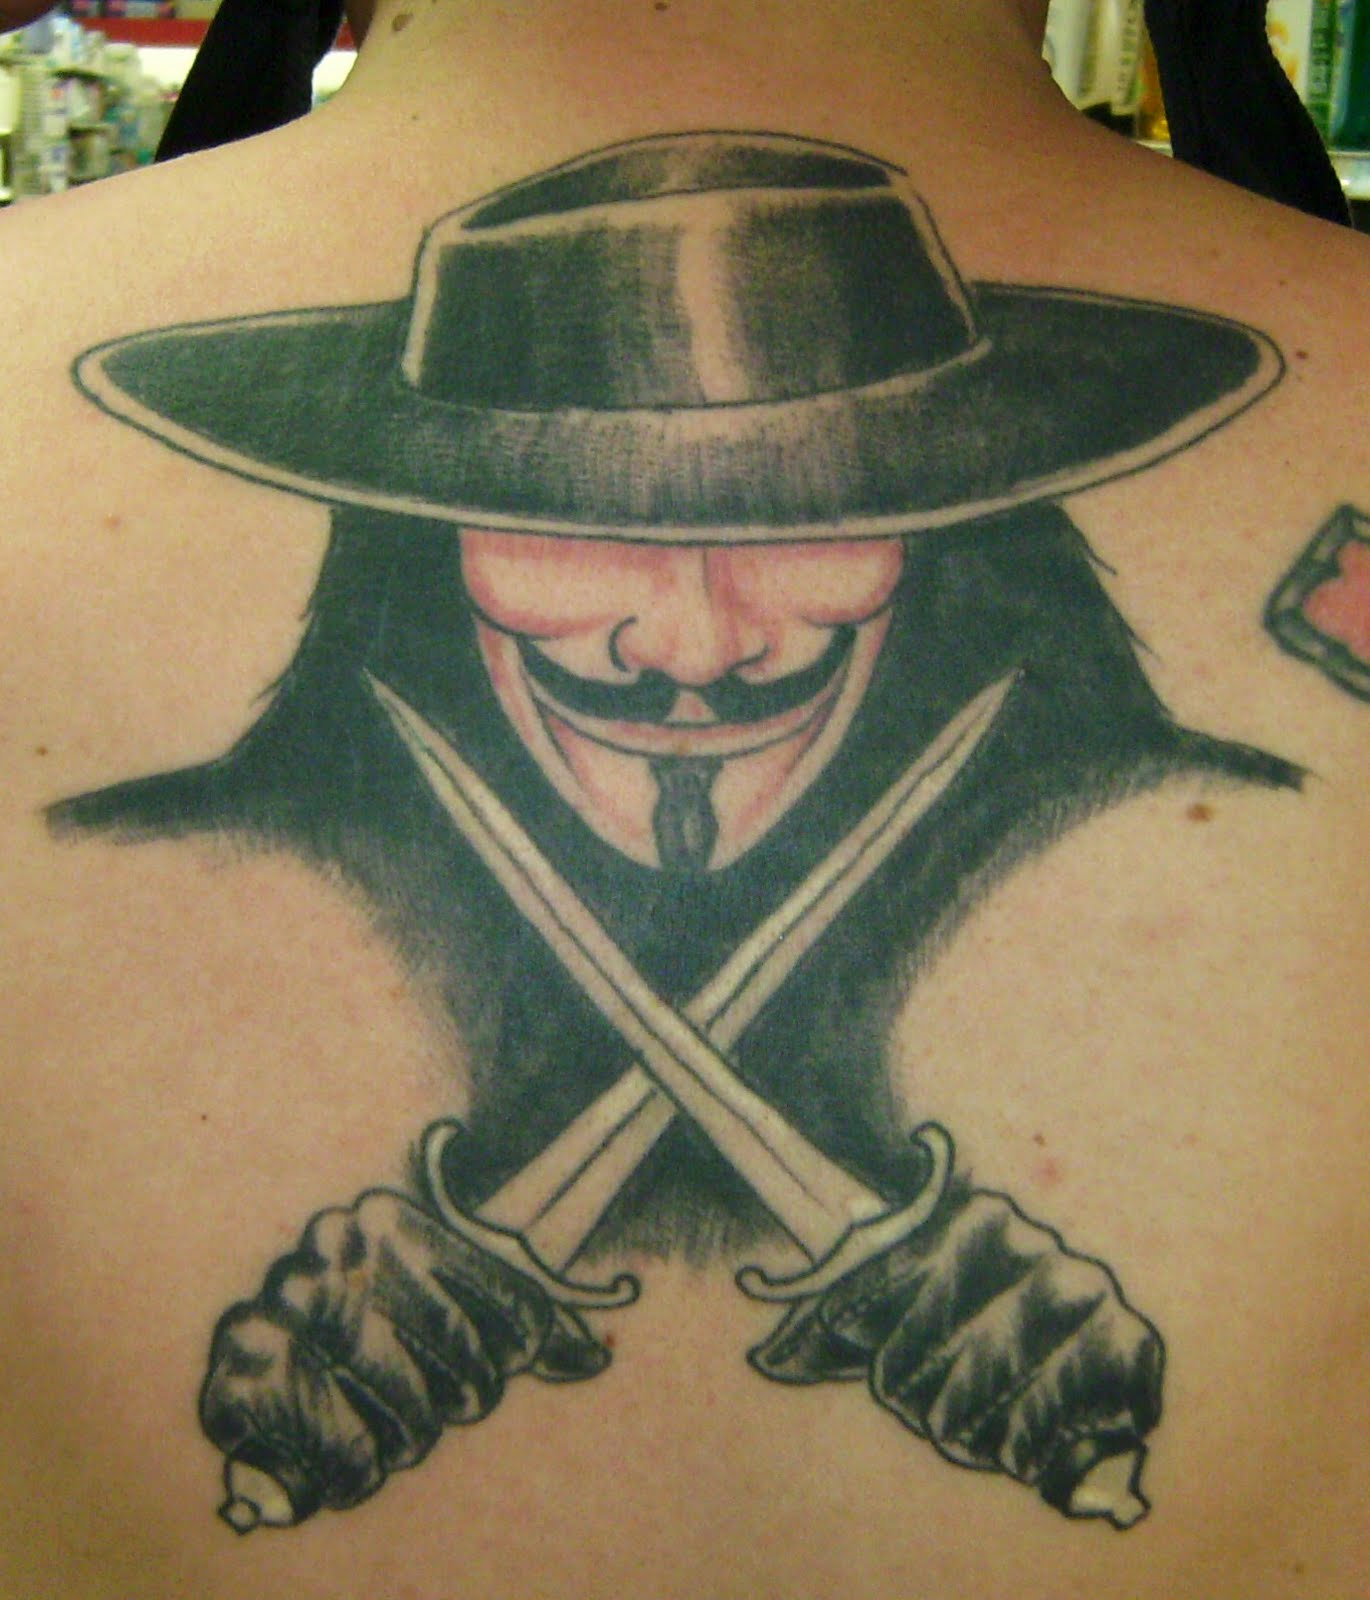 Tattoo Designs Vendetta: The Good, The Bad And The Tattooed: November 2010